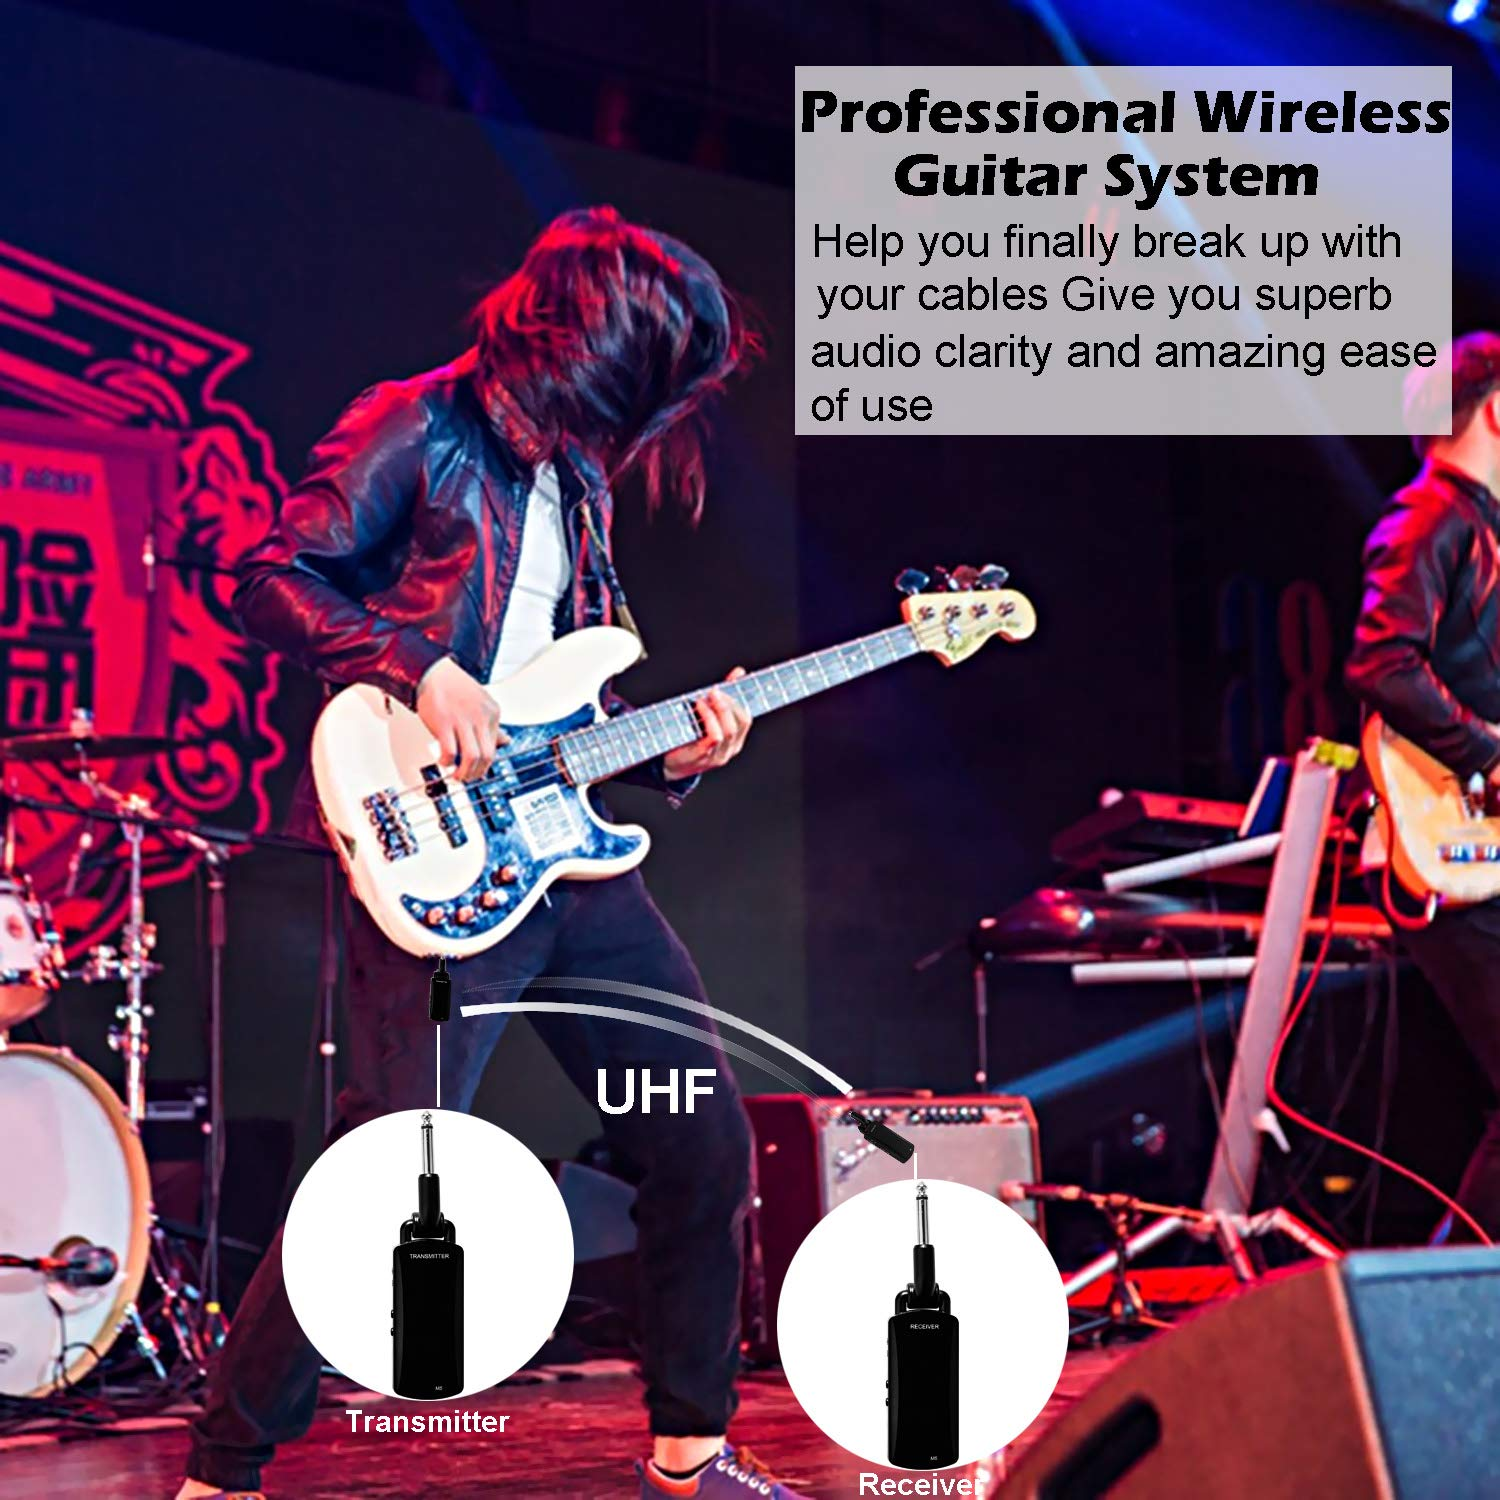 Wireless Guitar System - ZXK CO 5.8GHz Rechargeable Guitar Wireless Audio Transmitter Receiver - Electric Digital Guitar System Transmitter Receiver Set by ZXK CO (Image #7)